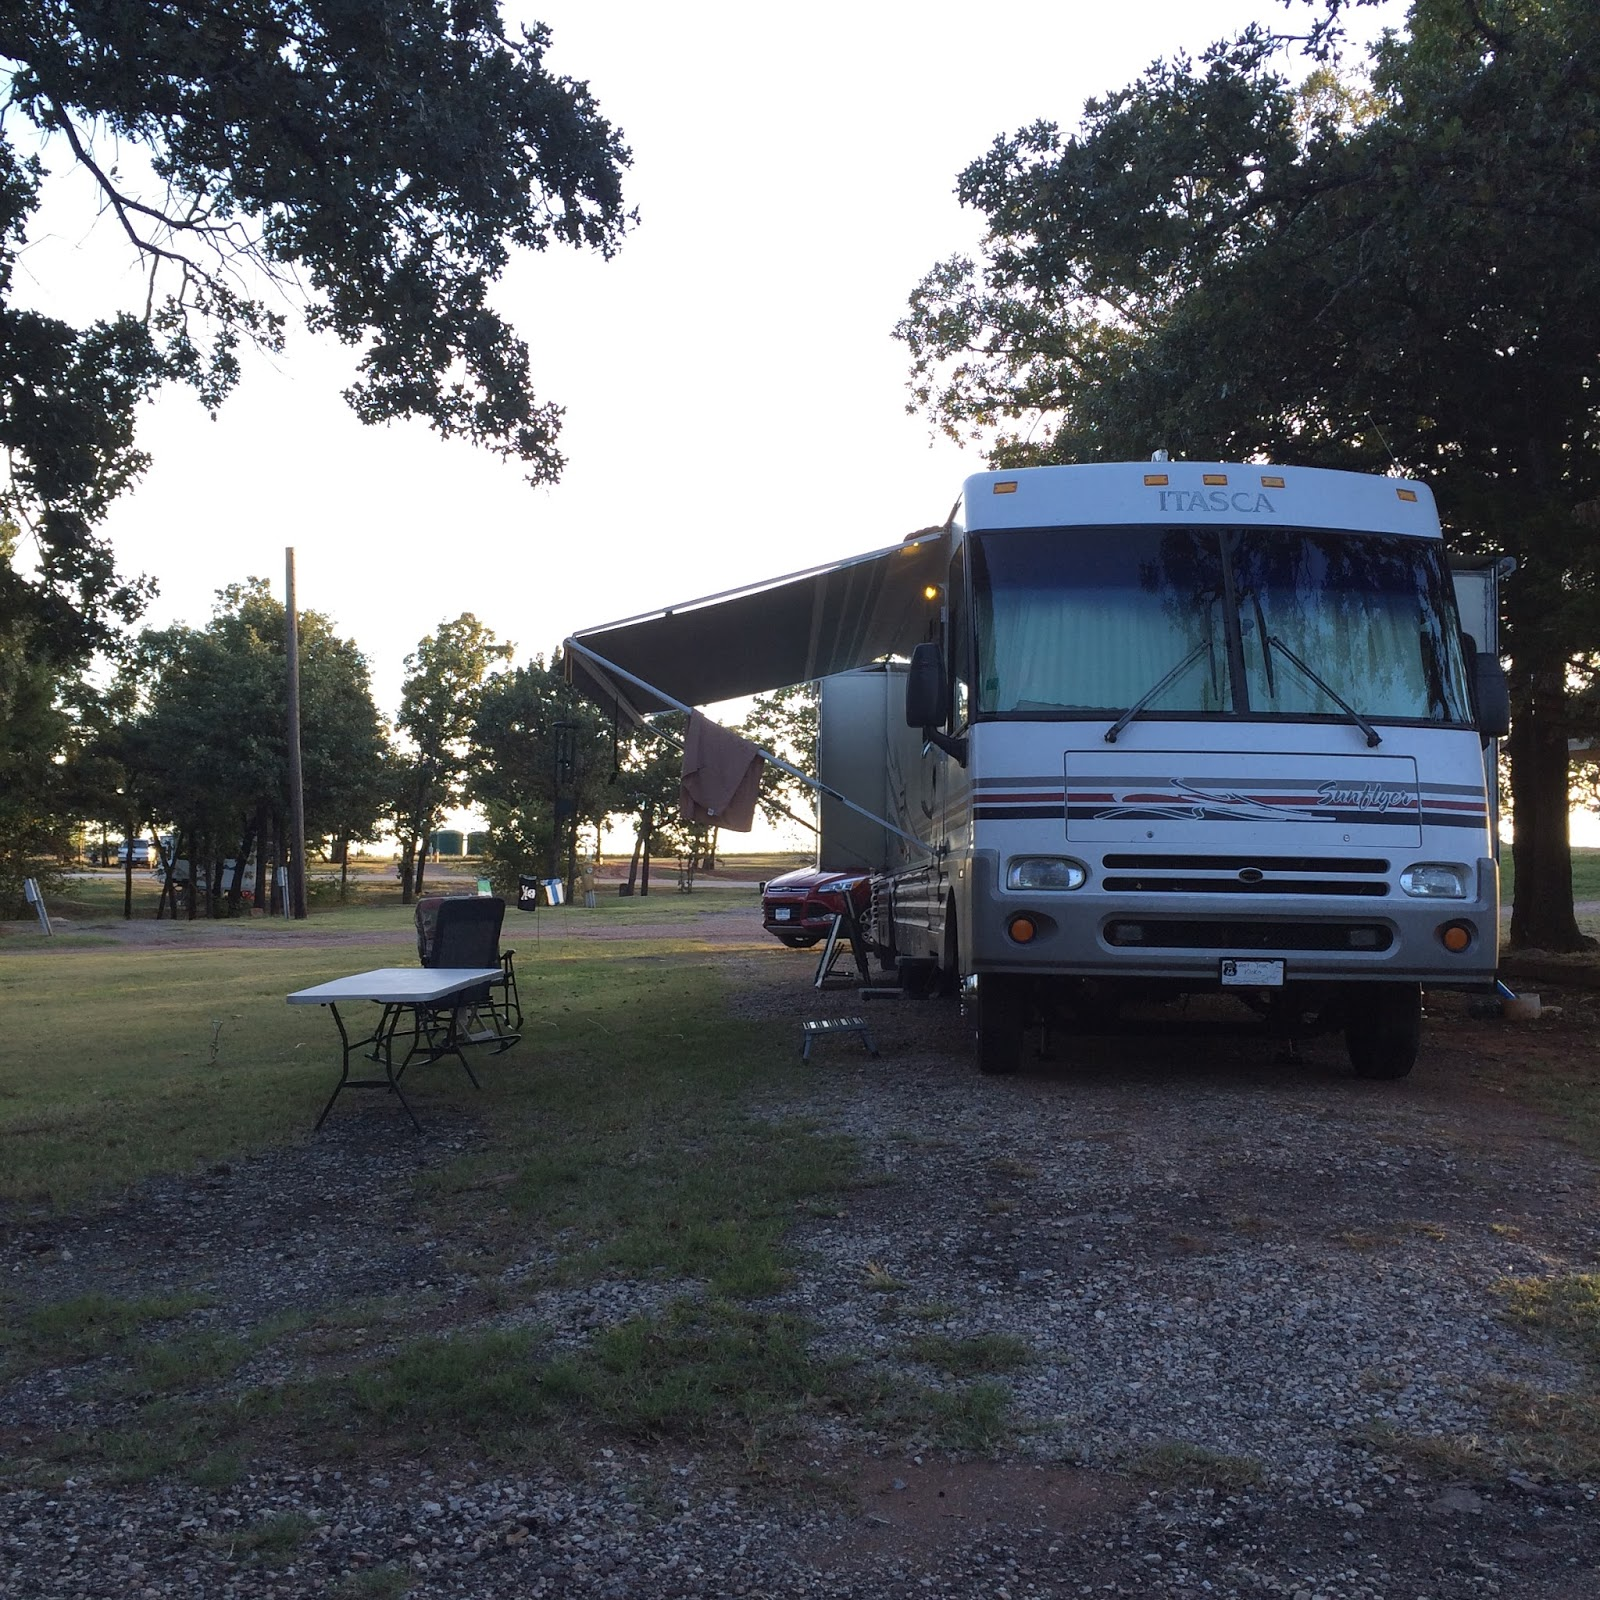 It Is A Combination RV Park And Mobile Home The Well Maintained Not So Much There Are Some Permanent Campsites But